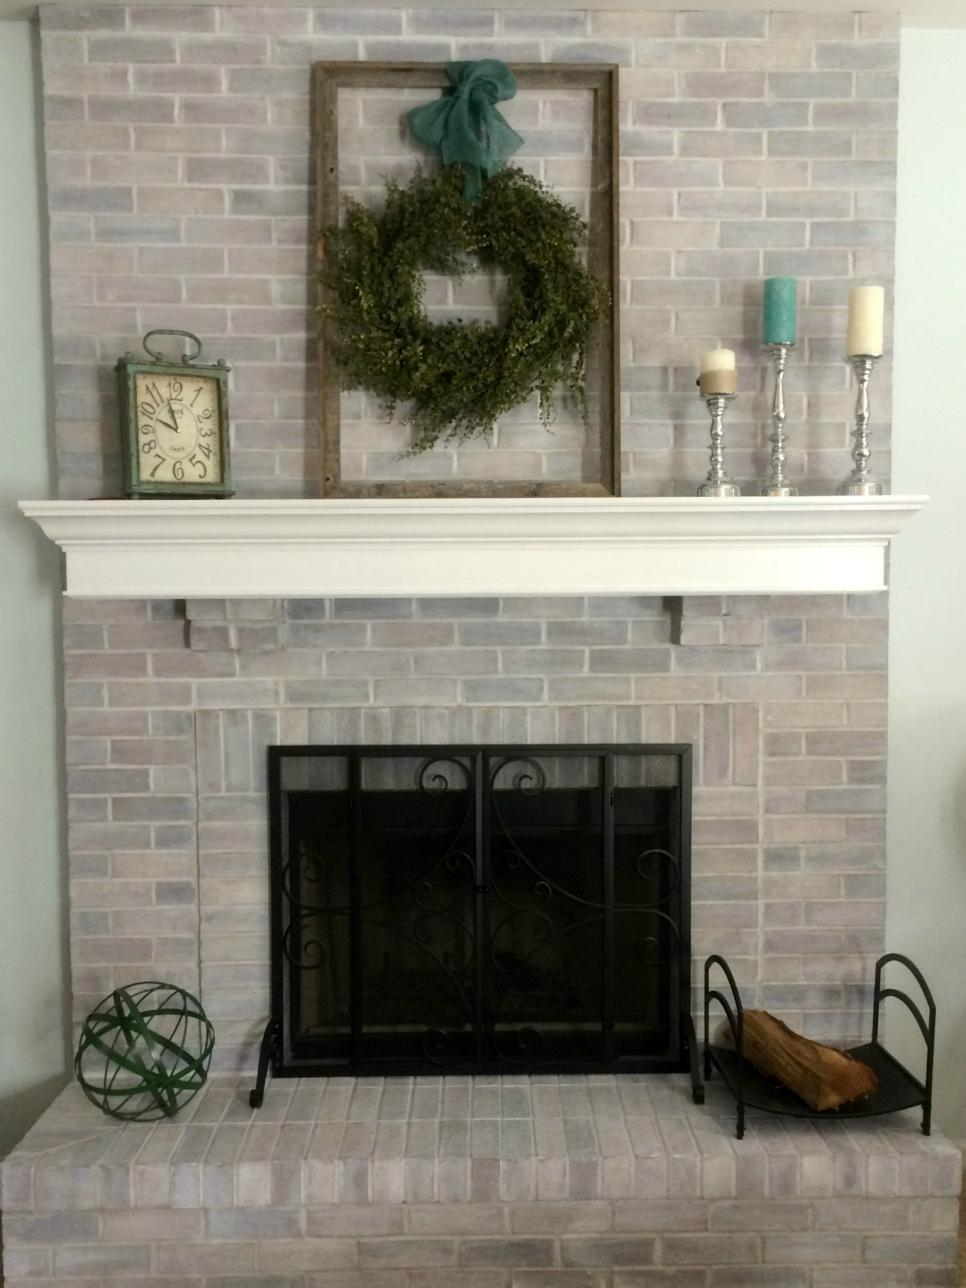 Tremendous Diy Ideas To Give Your Brick Fireplace A Modern Update Home Interior And Landscaping Sapresignezvosmurscom